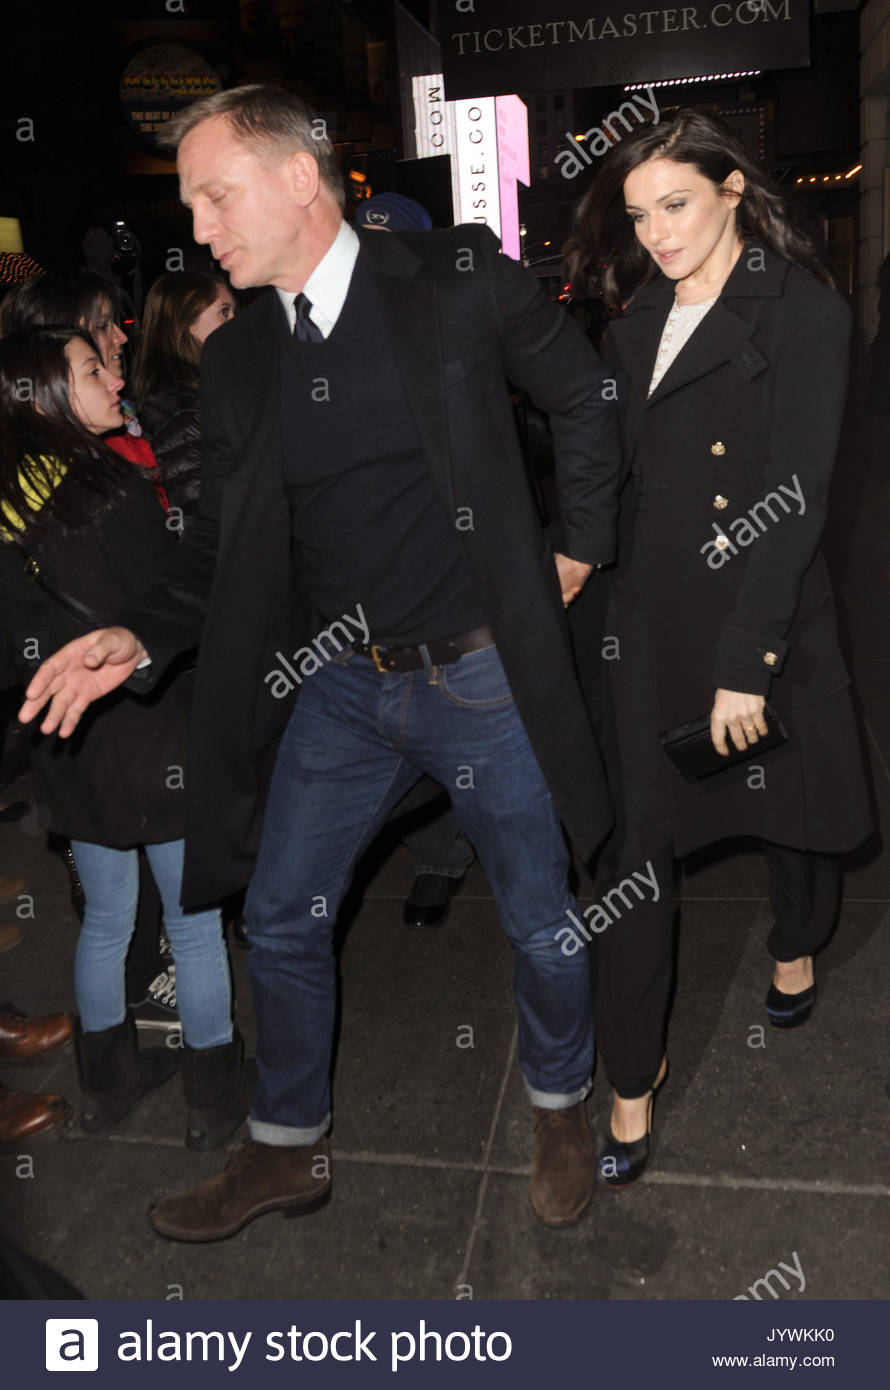 Performance with Daniel Craig and Rachel Weiss collected a record amount 01/08/2014 68